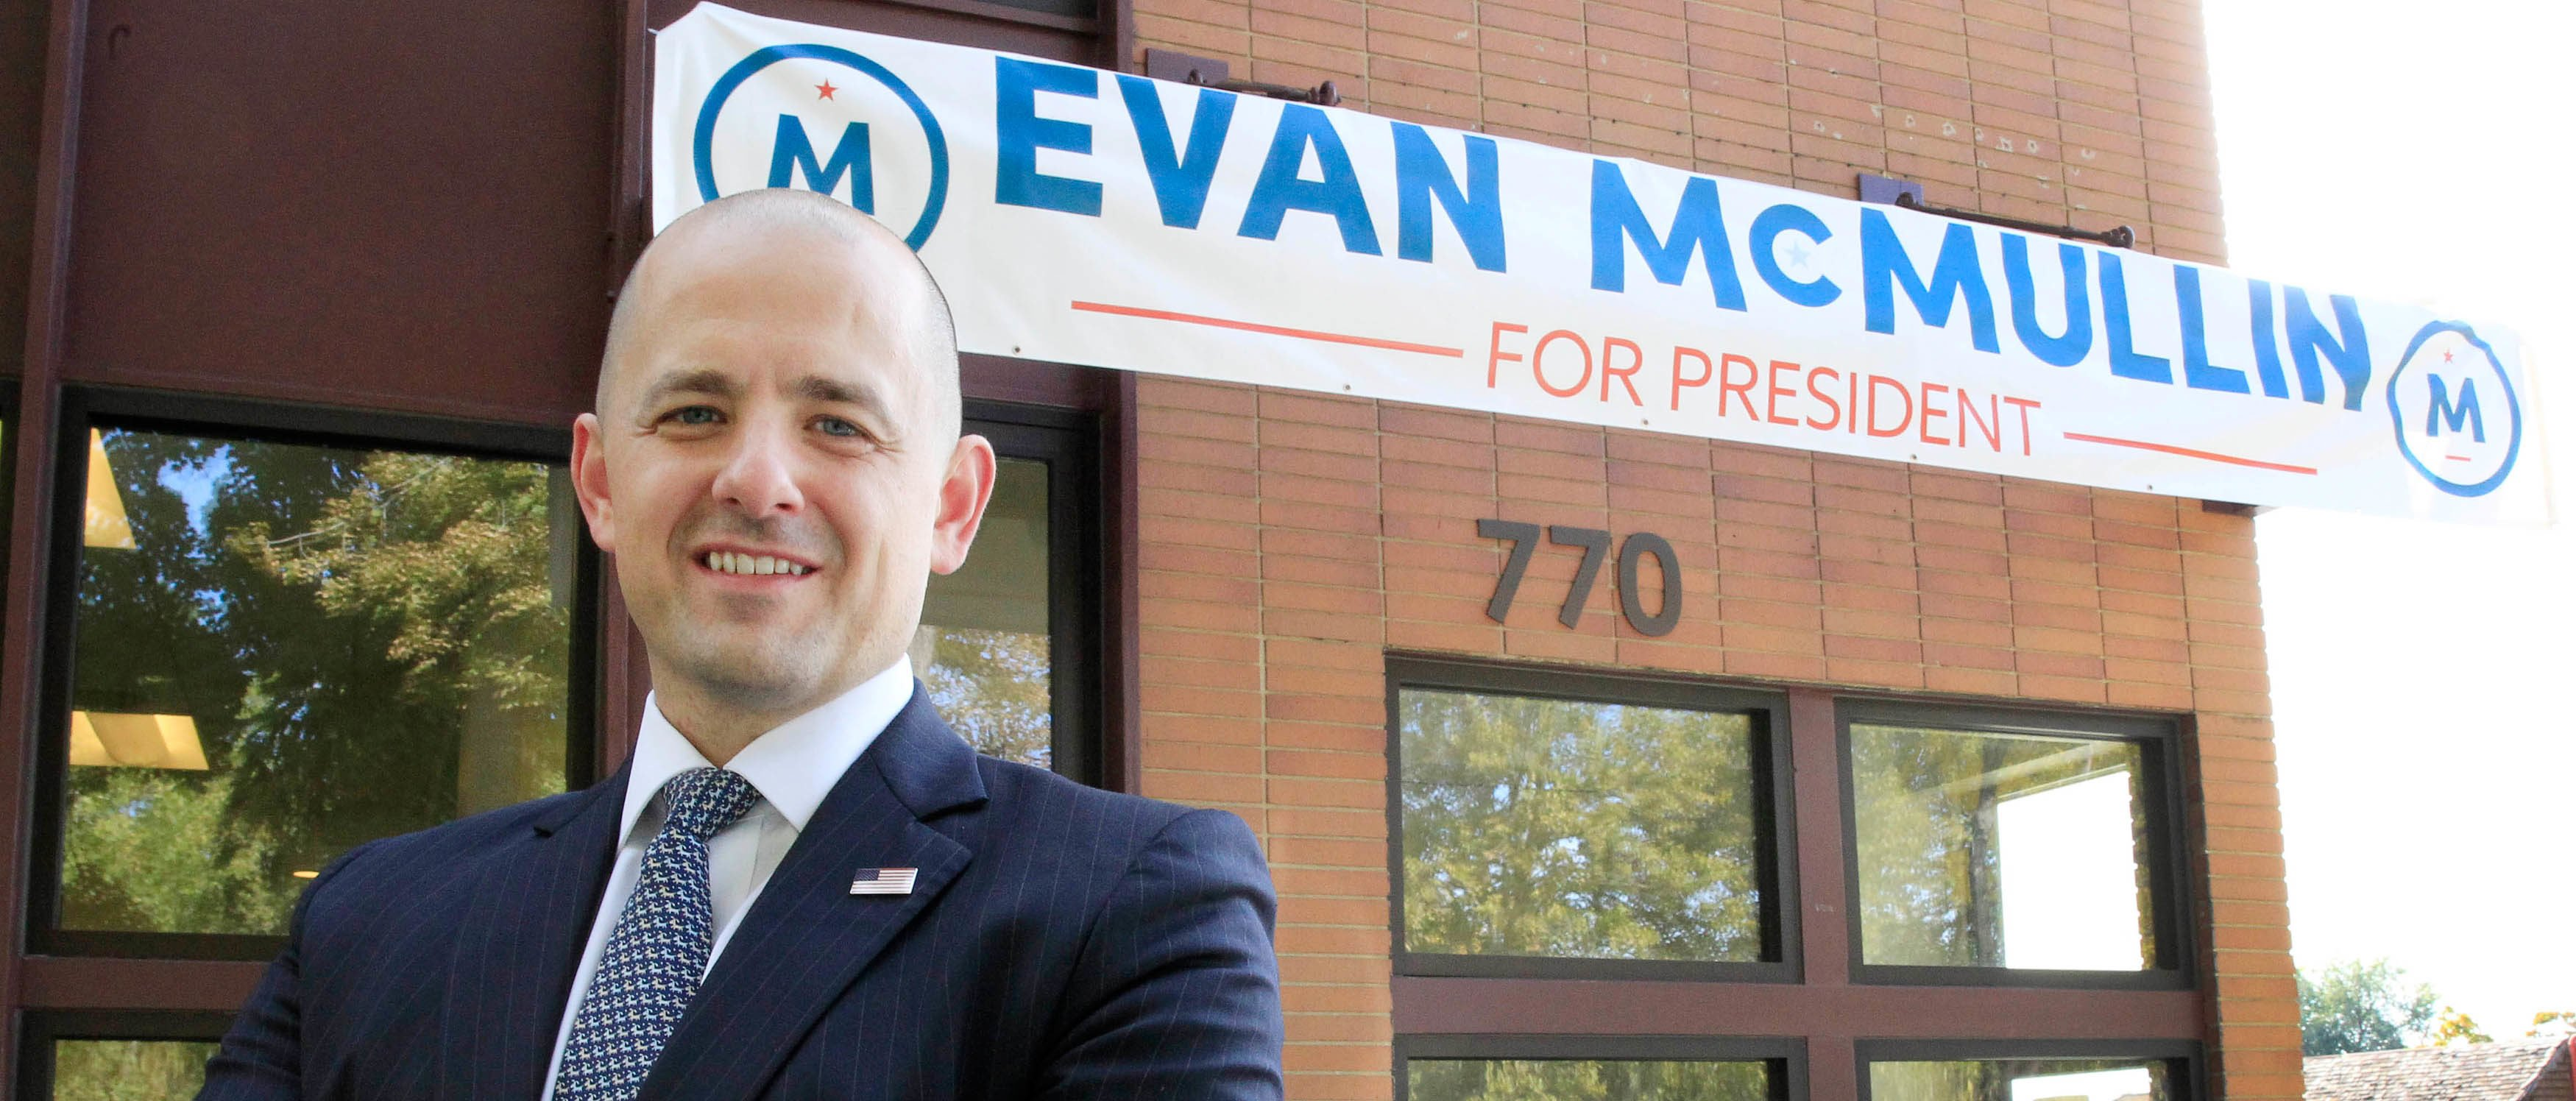 Third party candidate Evan McMullin, an independent, poses for a picture outside his campaign offices in Salt Lake City, Utah, October 12, 2016.  REUTERS/George Frey